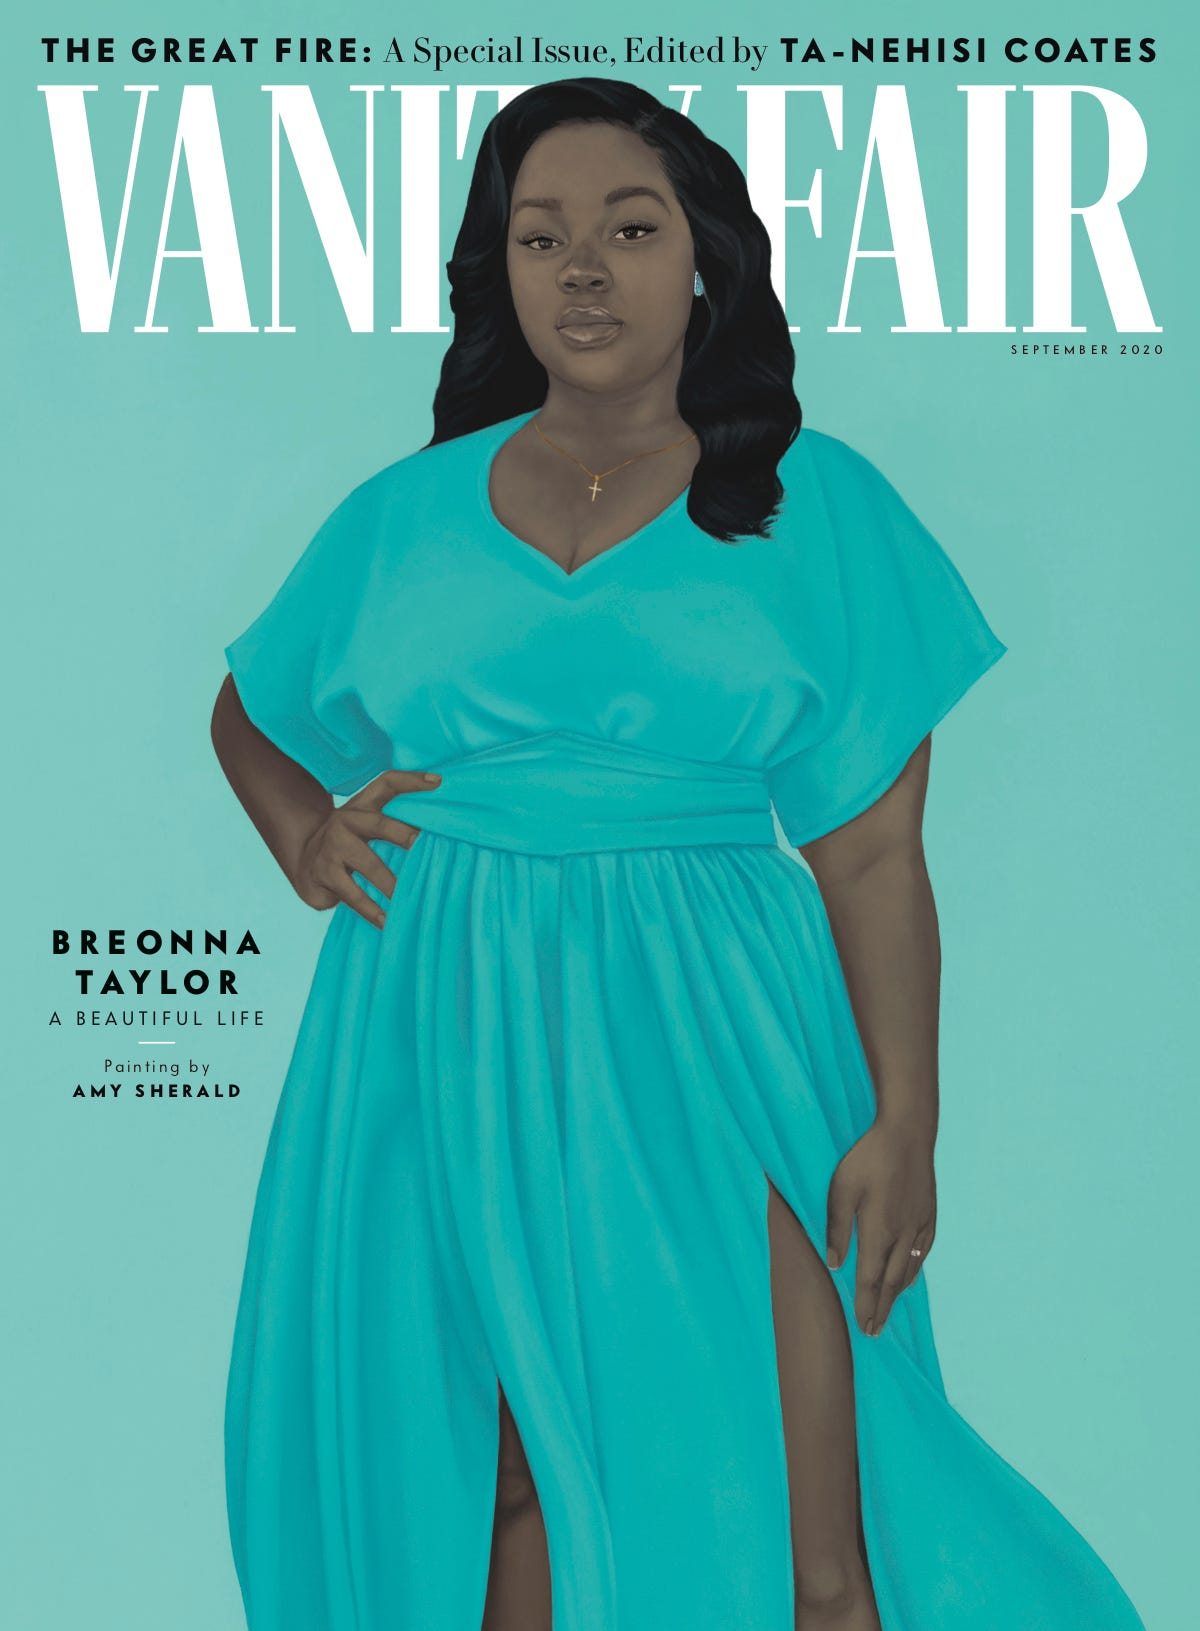 Breonna Taylor Portrait by Amy Sherald on the cover of Vanity Fair, September 2020 Issue in dress by Jibri